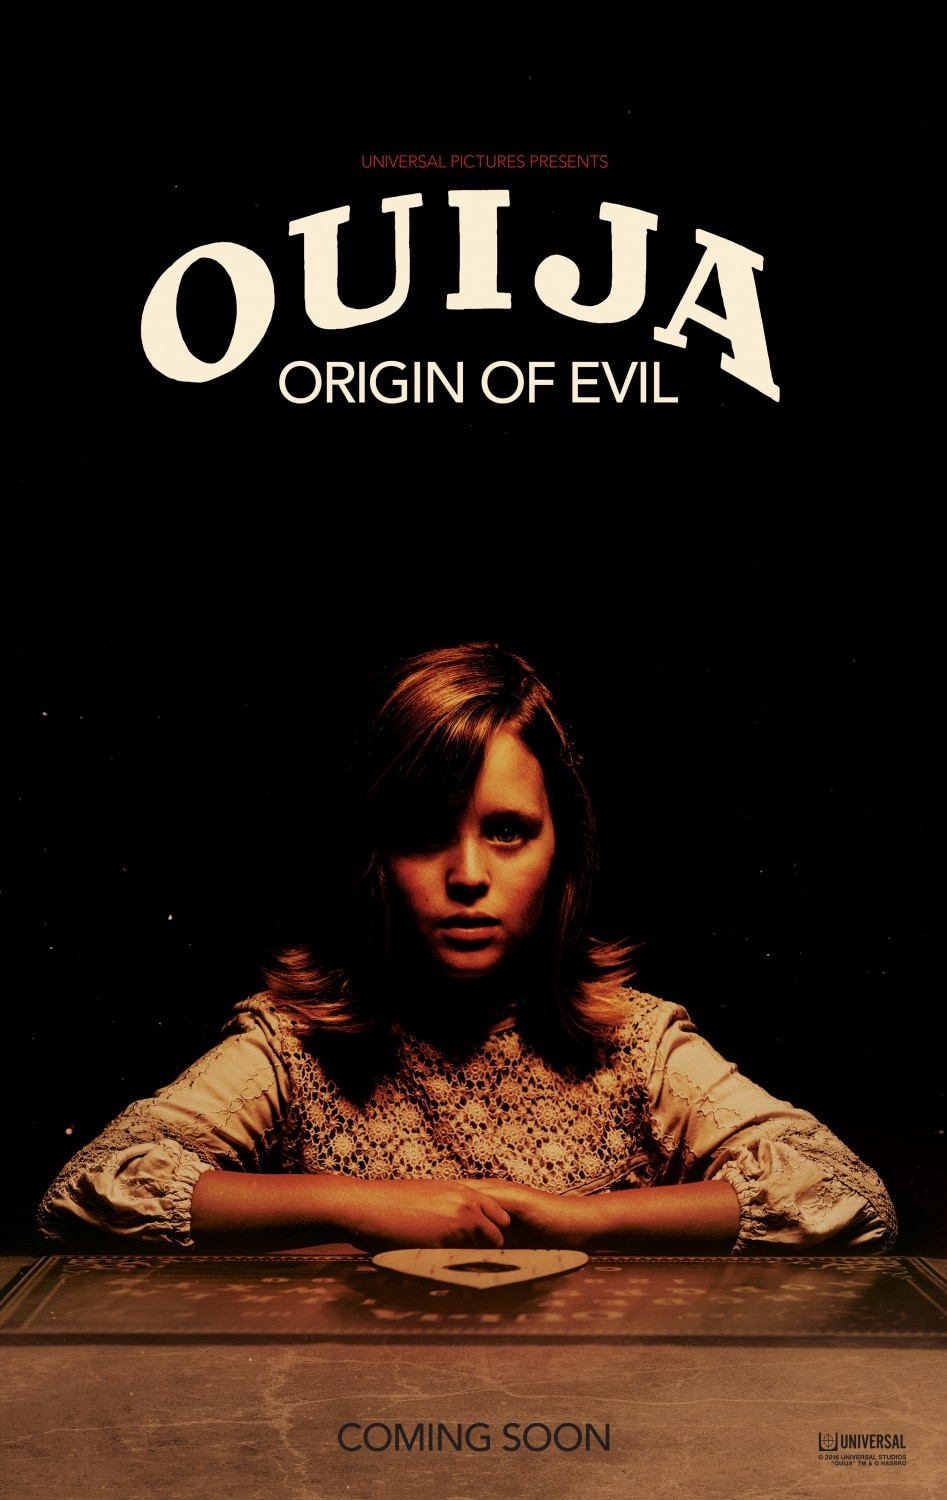 ouija 2 version 1 - Saturn Awards 2017: Mike Flanagan on Ouija Nomination; Updates on Gerald's Game and The Haunting of Hill House